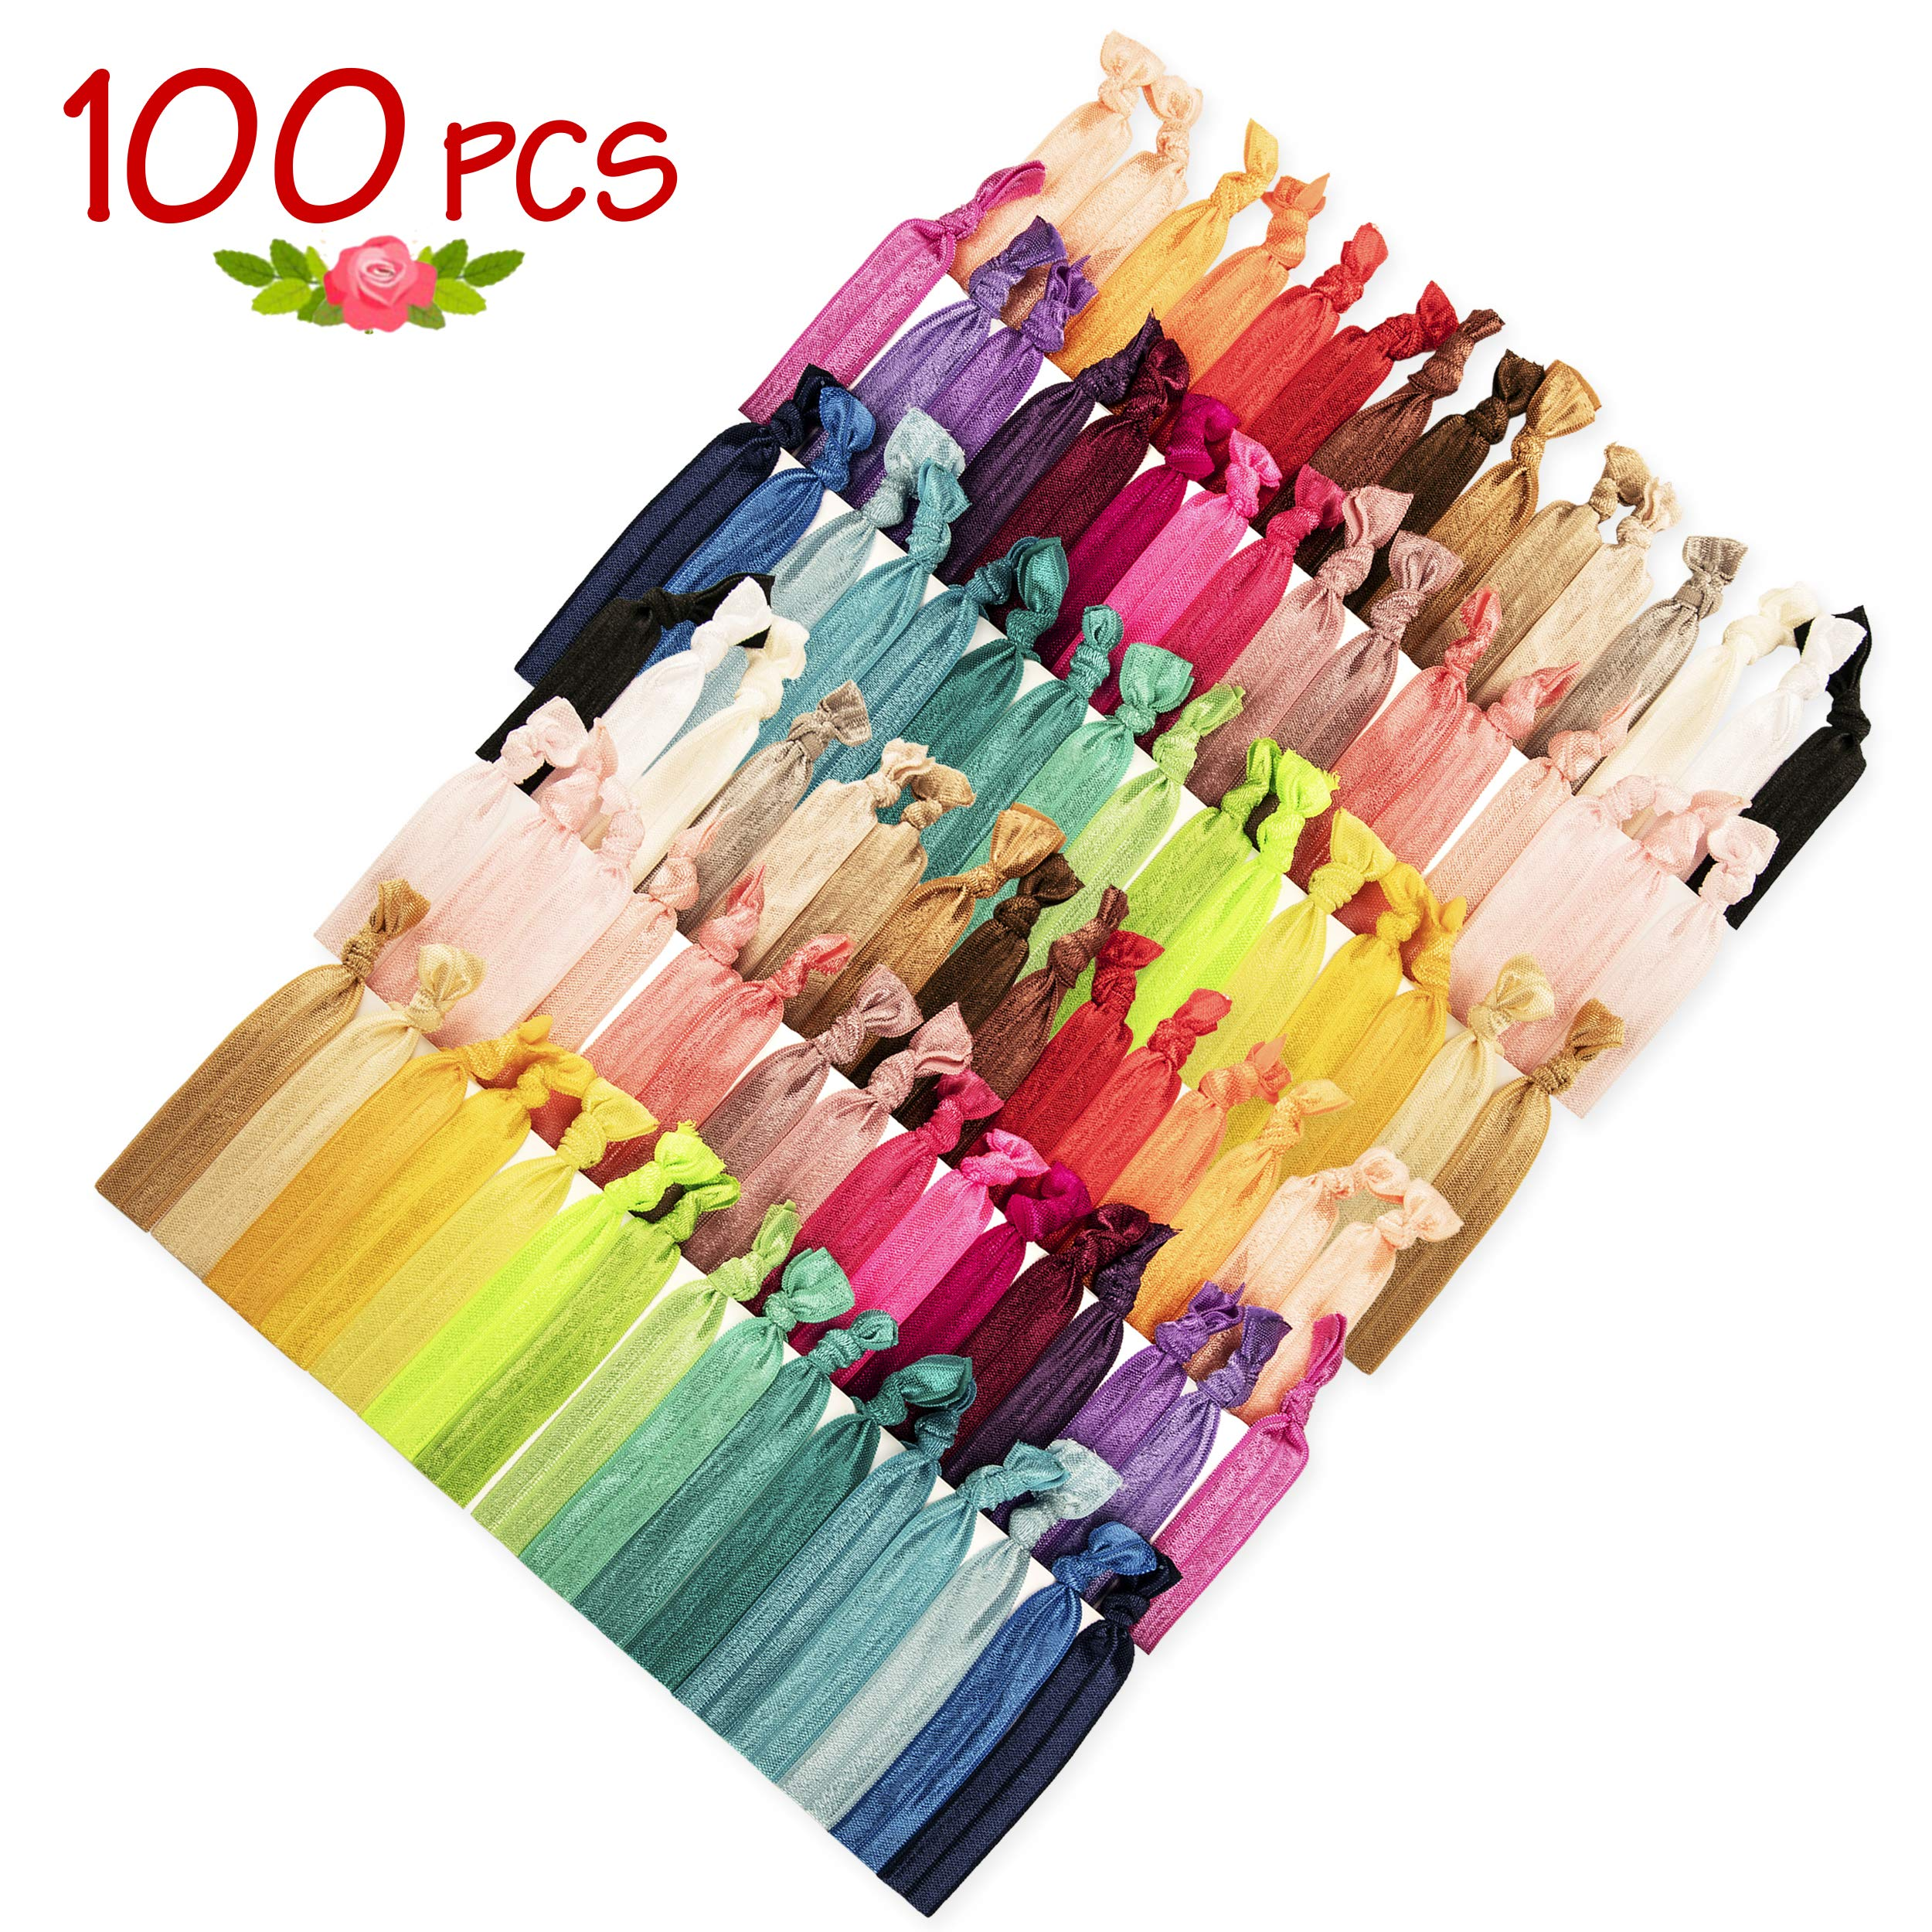 JLIKA Elastic Hair Ties (SET OF 100) Colorful Solids - No Crease Ouchless - Ponytail Holders - Ribbon Hairties for Women Girls Teens and Kids